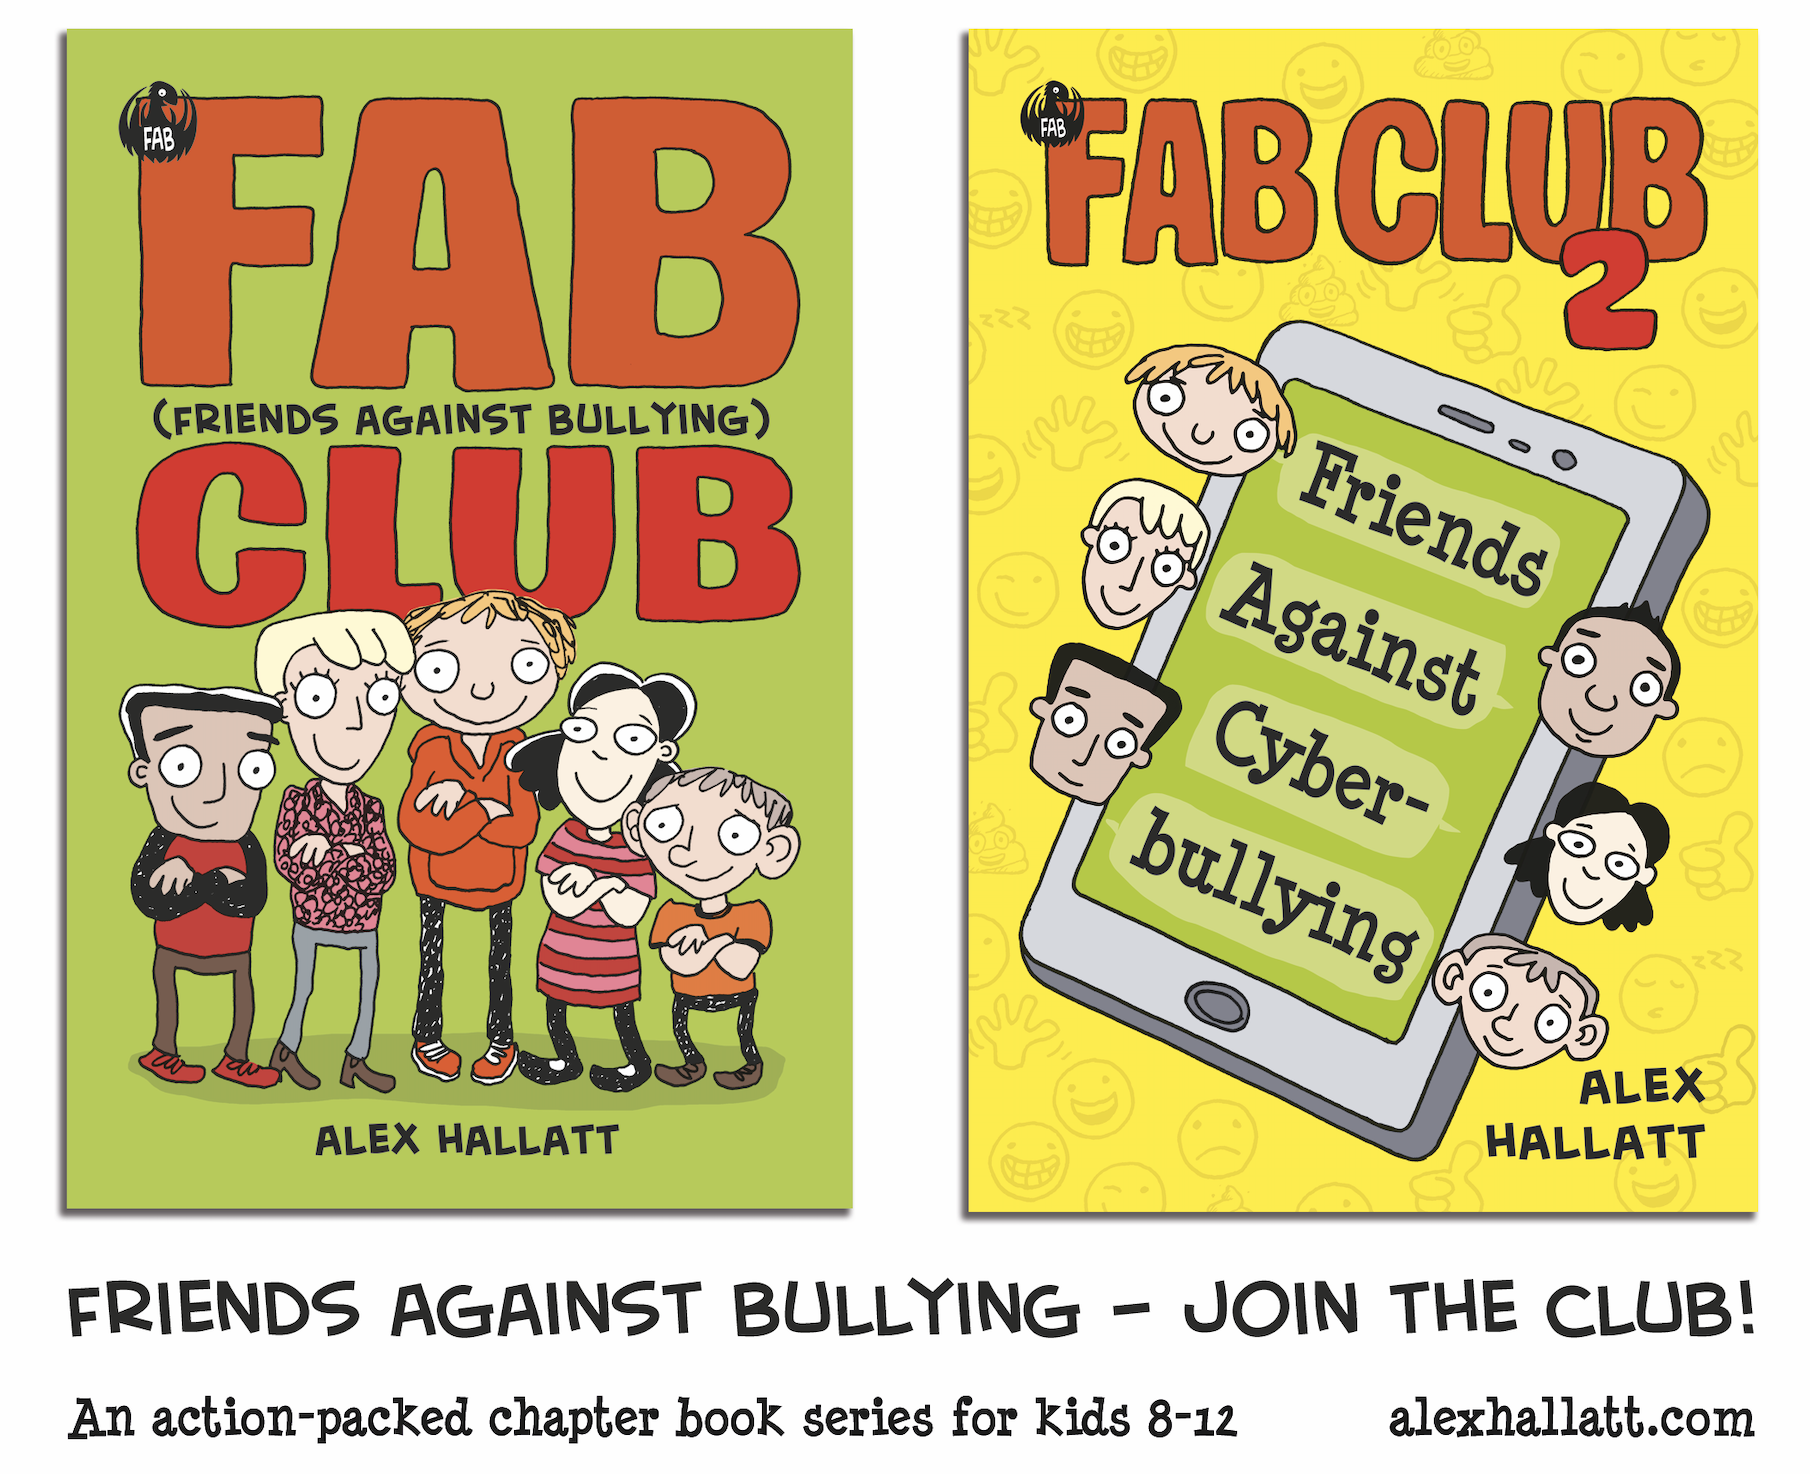 FAB Club books for kids - stand up to bullying and join the club